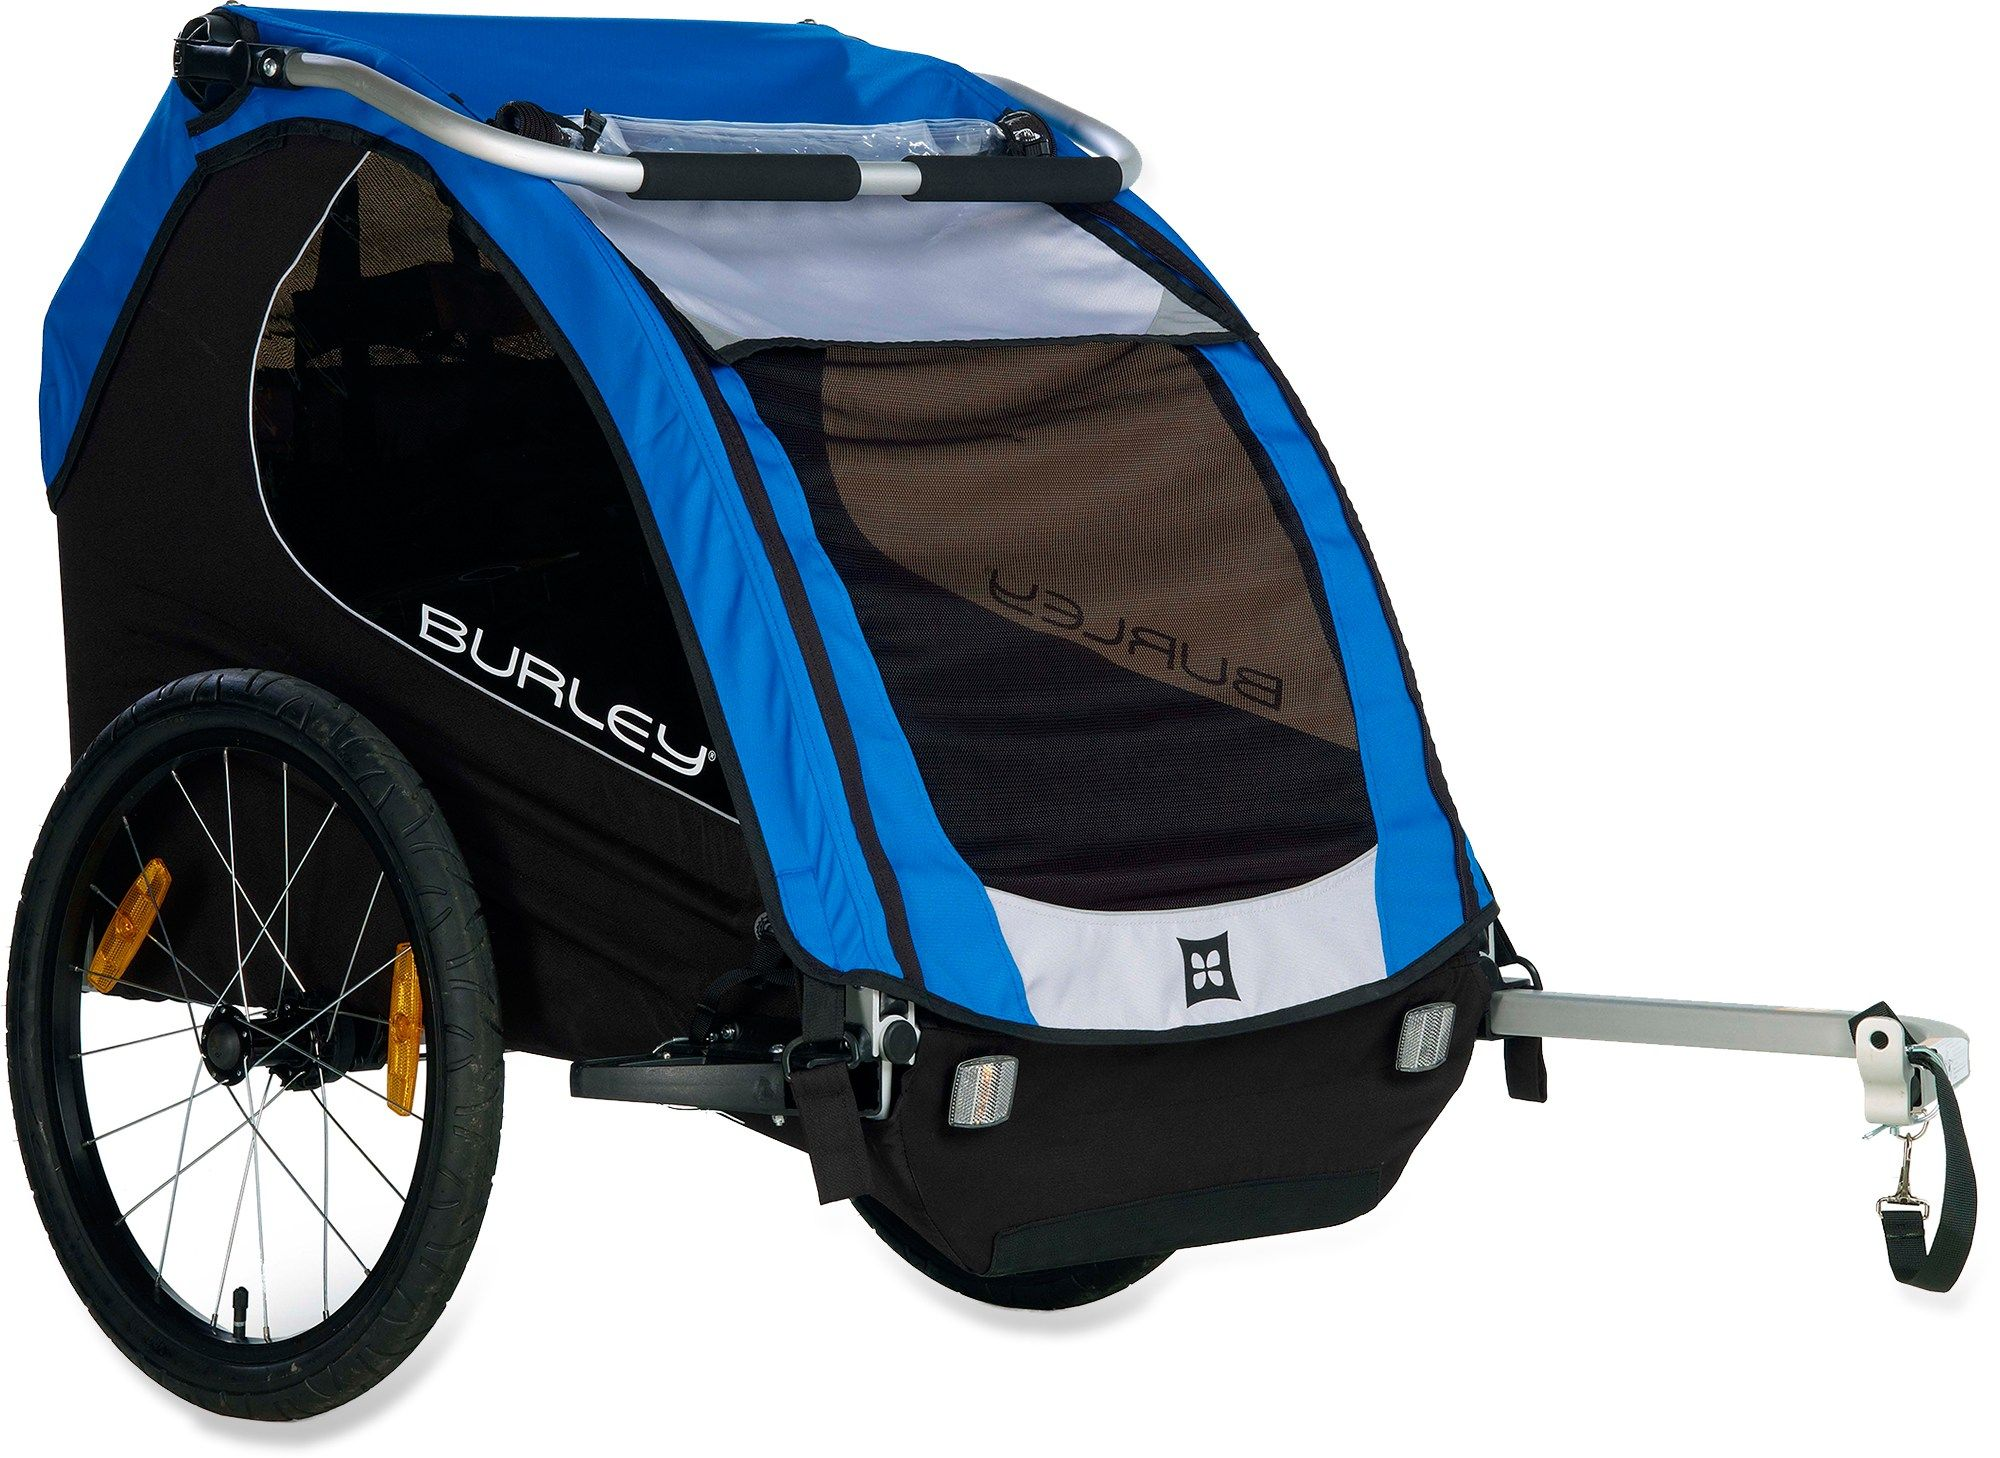 Burley Encore Bike Trailer REI Coop *Bicycle